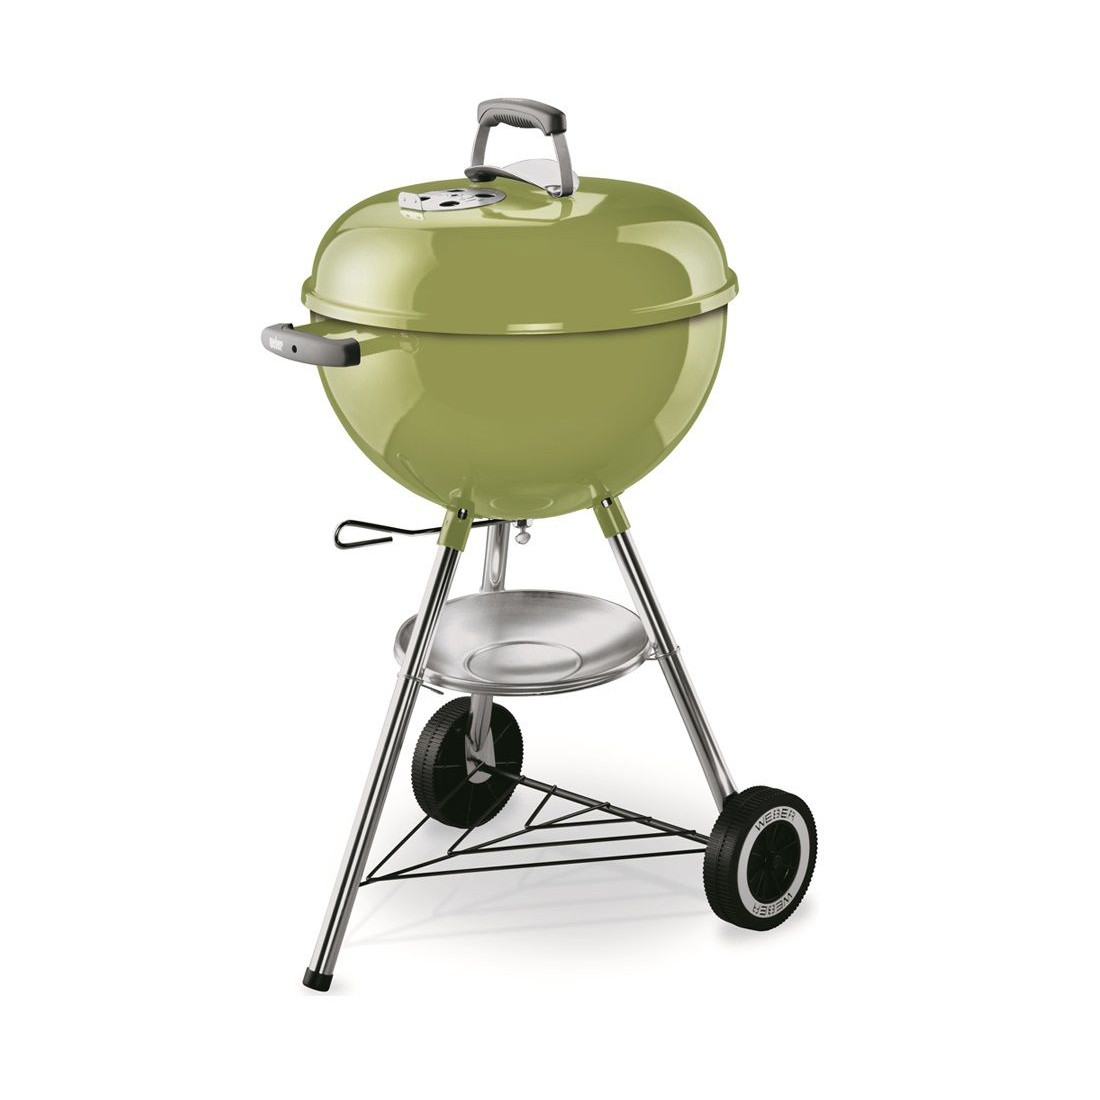 weber one touch original 47 cm spring green d bbq winkel van nederland en belgi allesvoorbbq. Black Bedroom Furniture Sets. Home Design Ideas